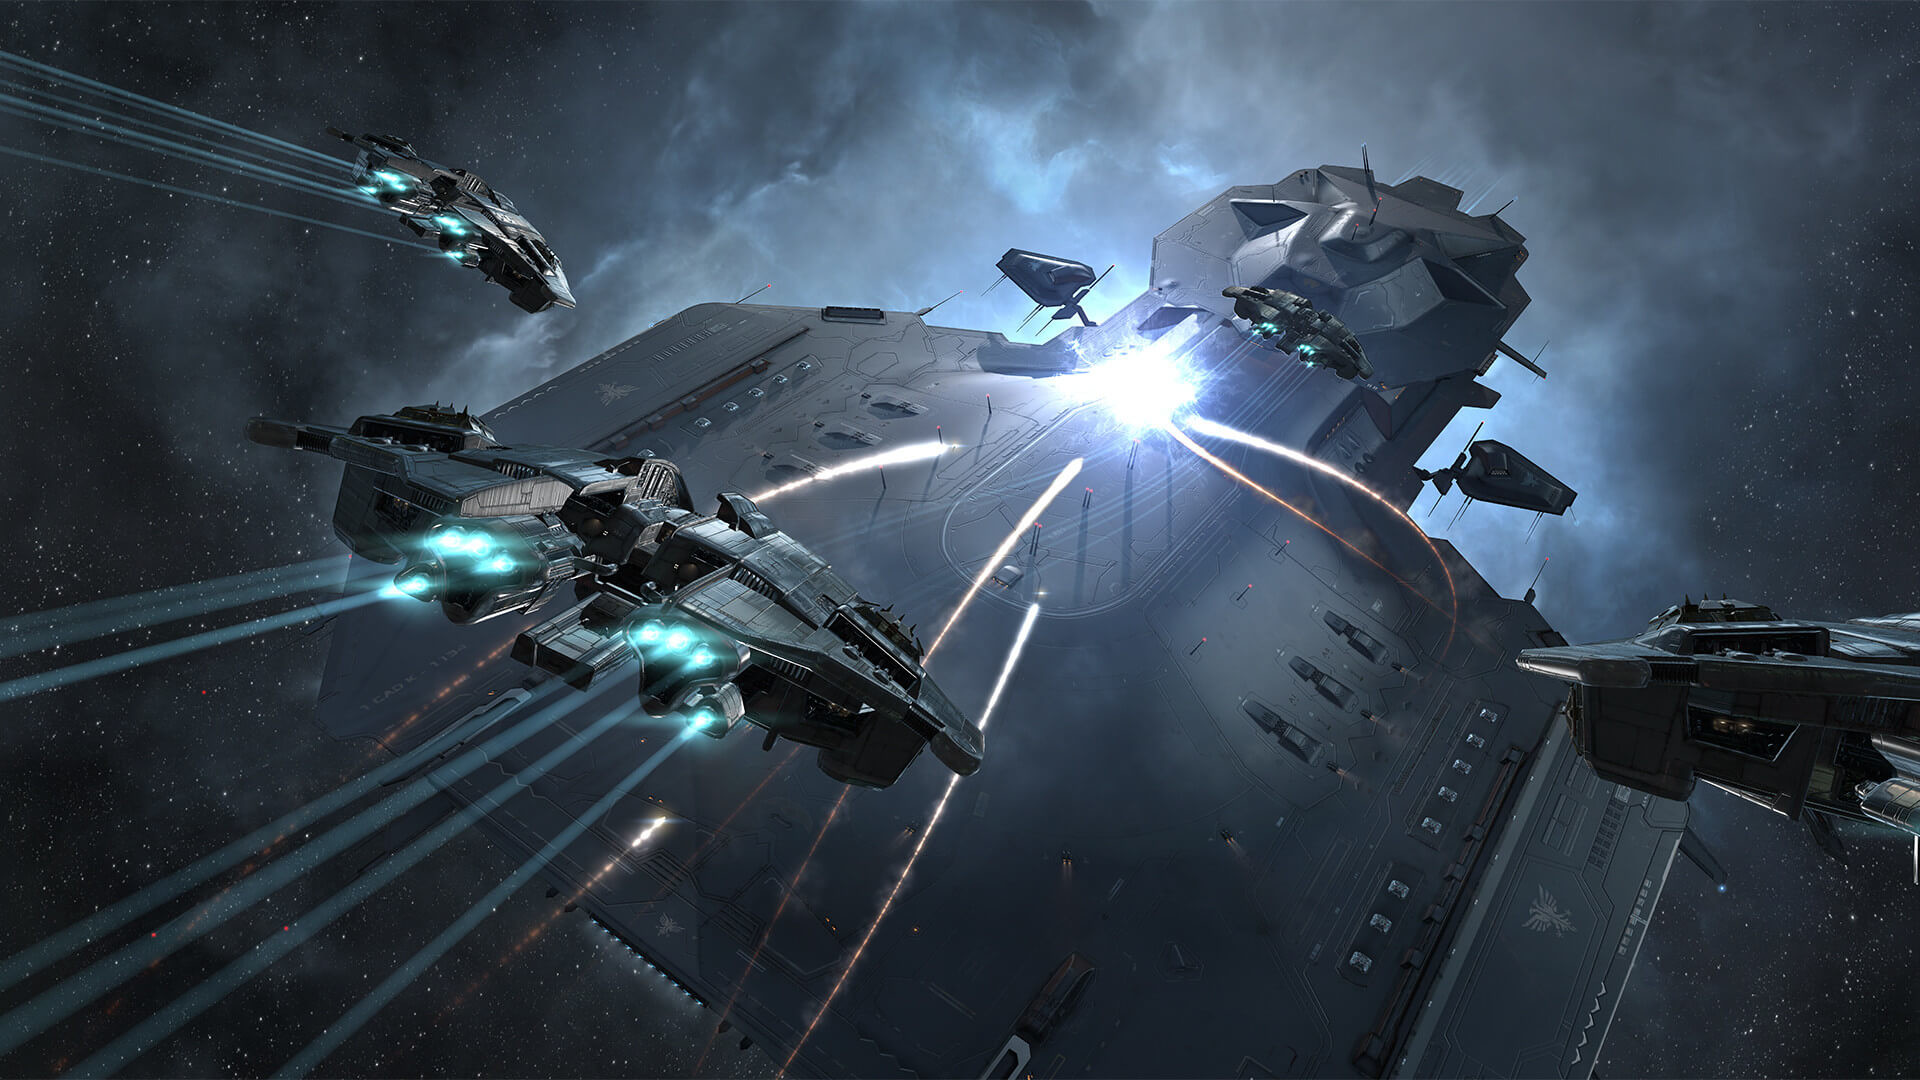 'EVE Online' is crowdsourcing the search for real exoplanets